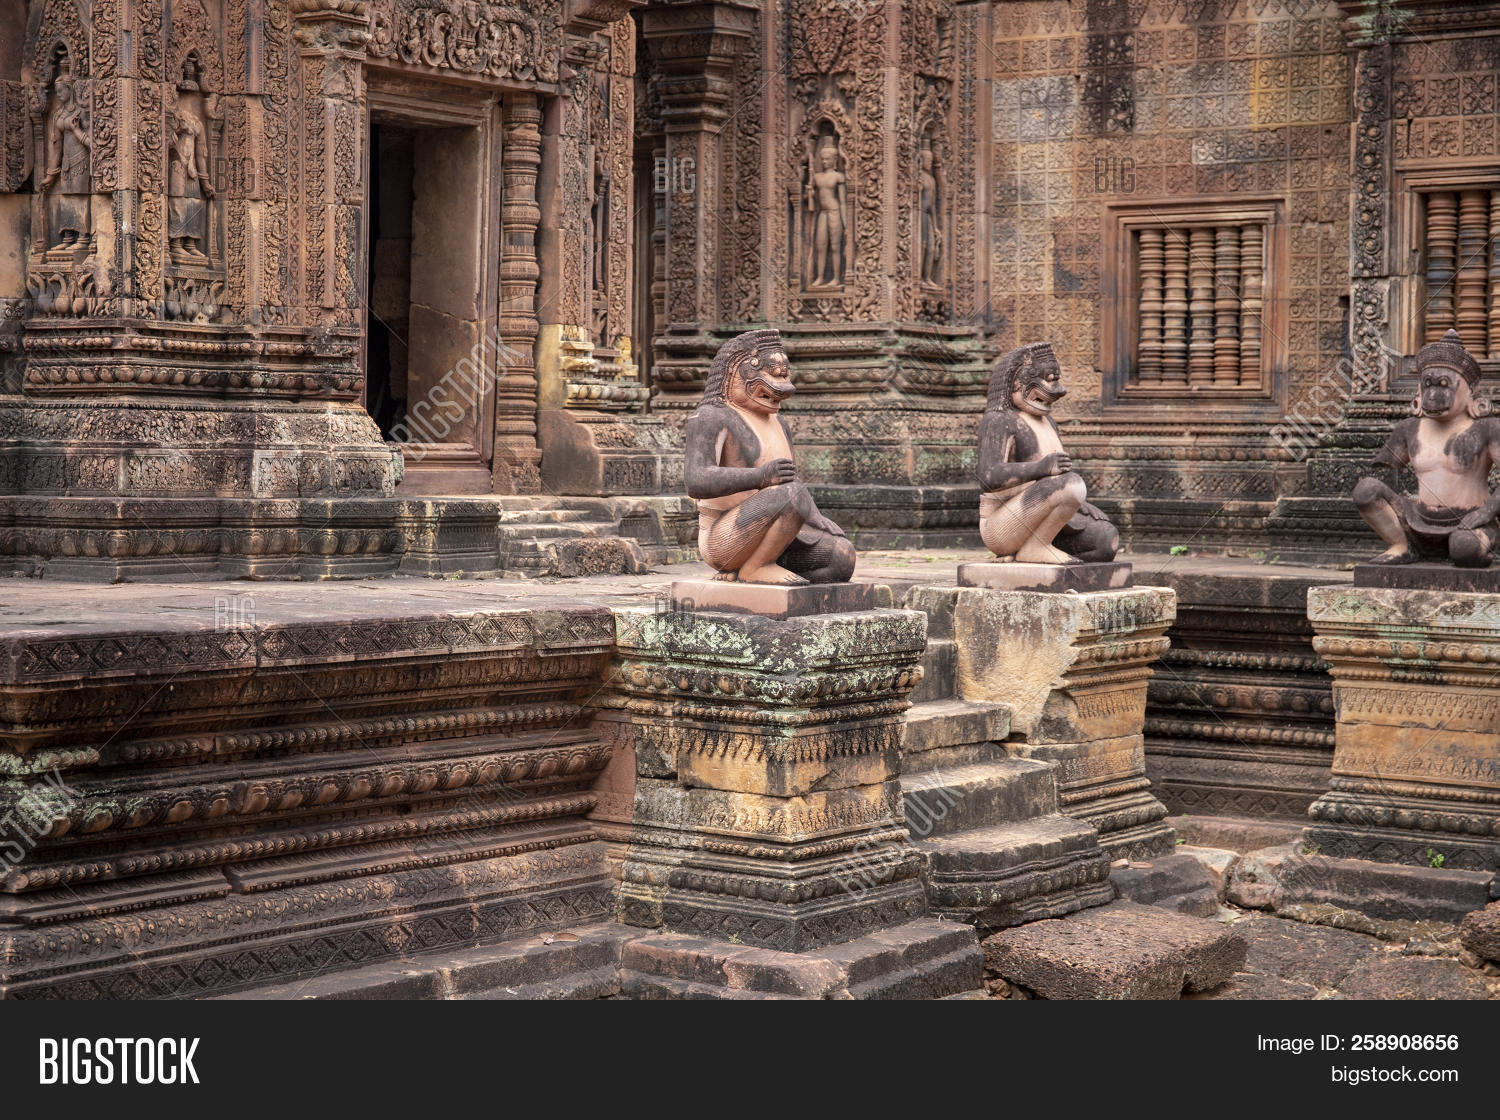 The tradition of stone carving in cambodia artisans d angkor